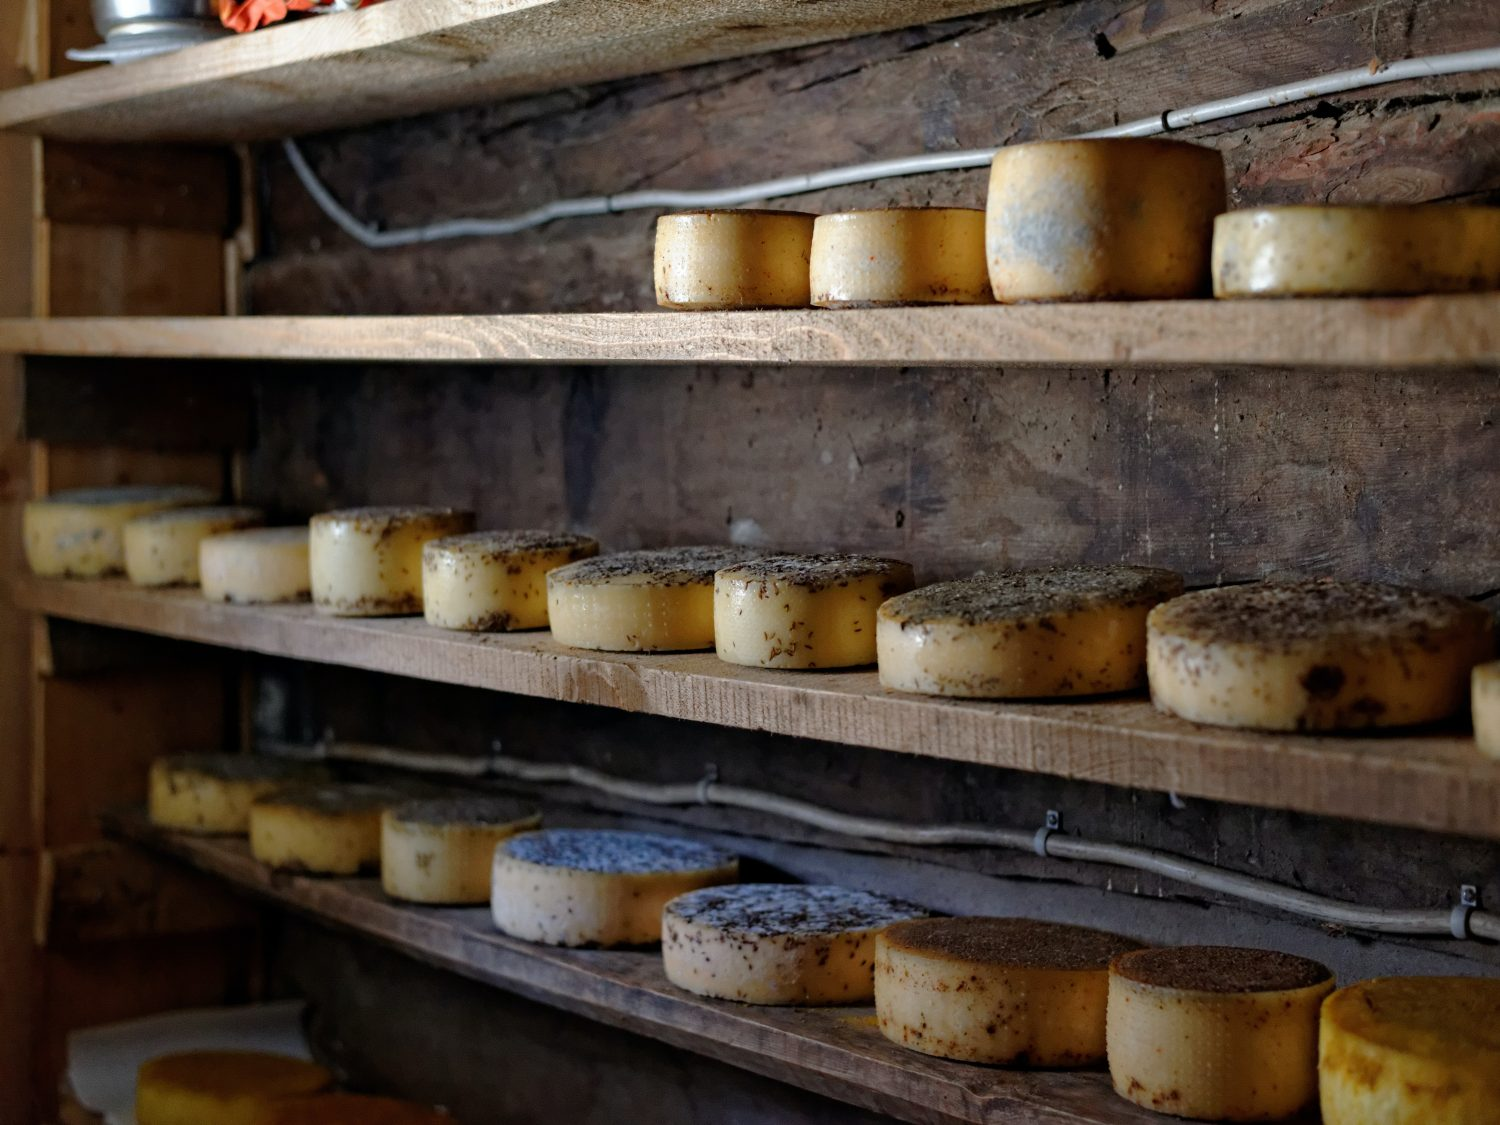 Hard cheeses using Rennet